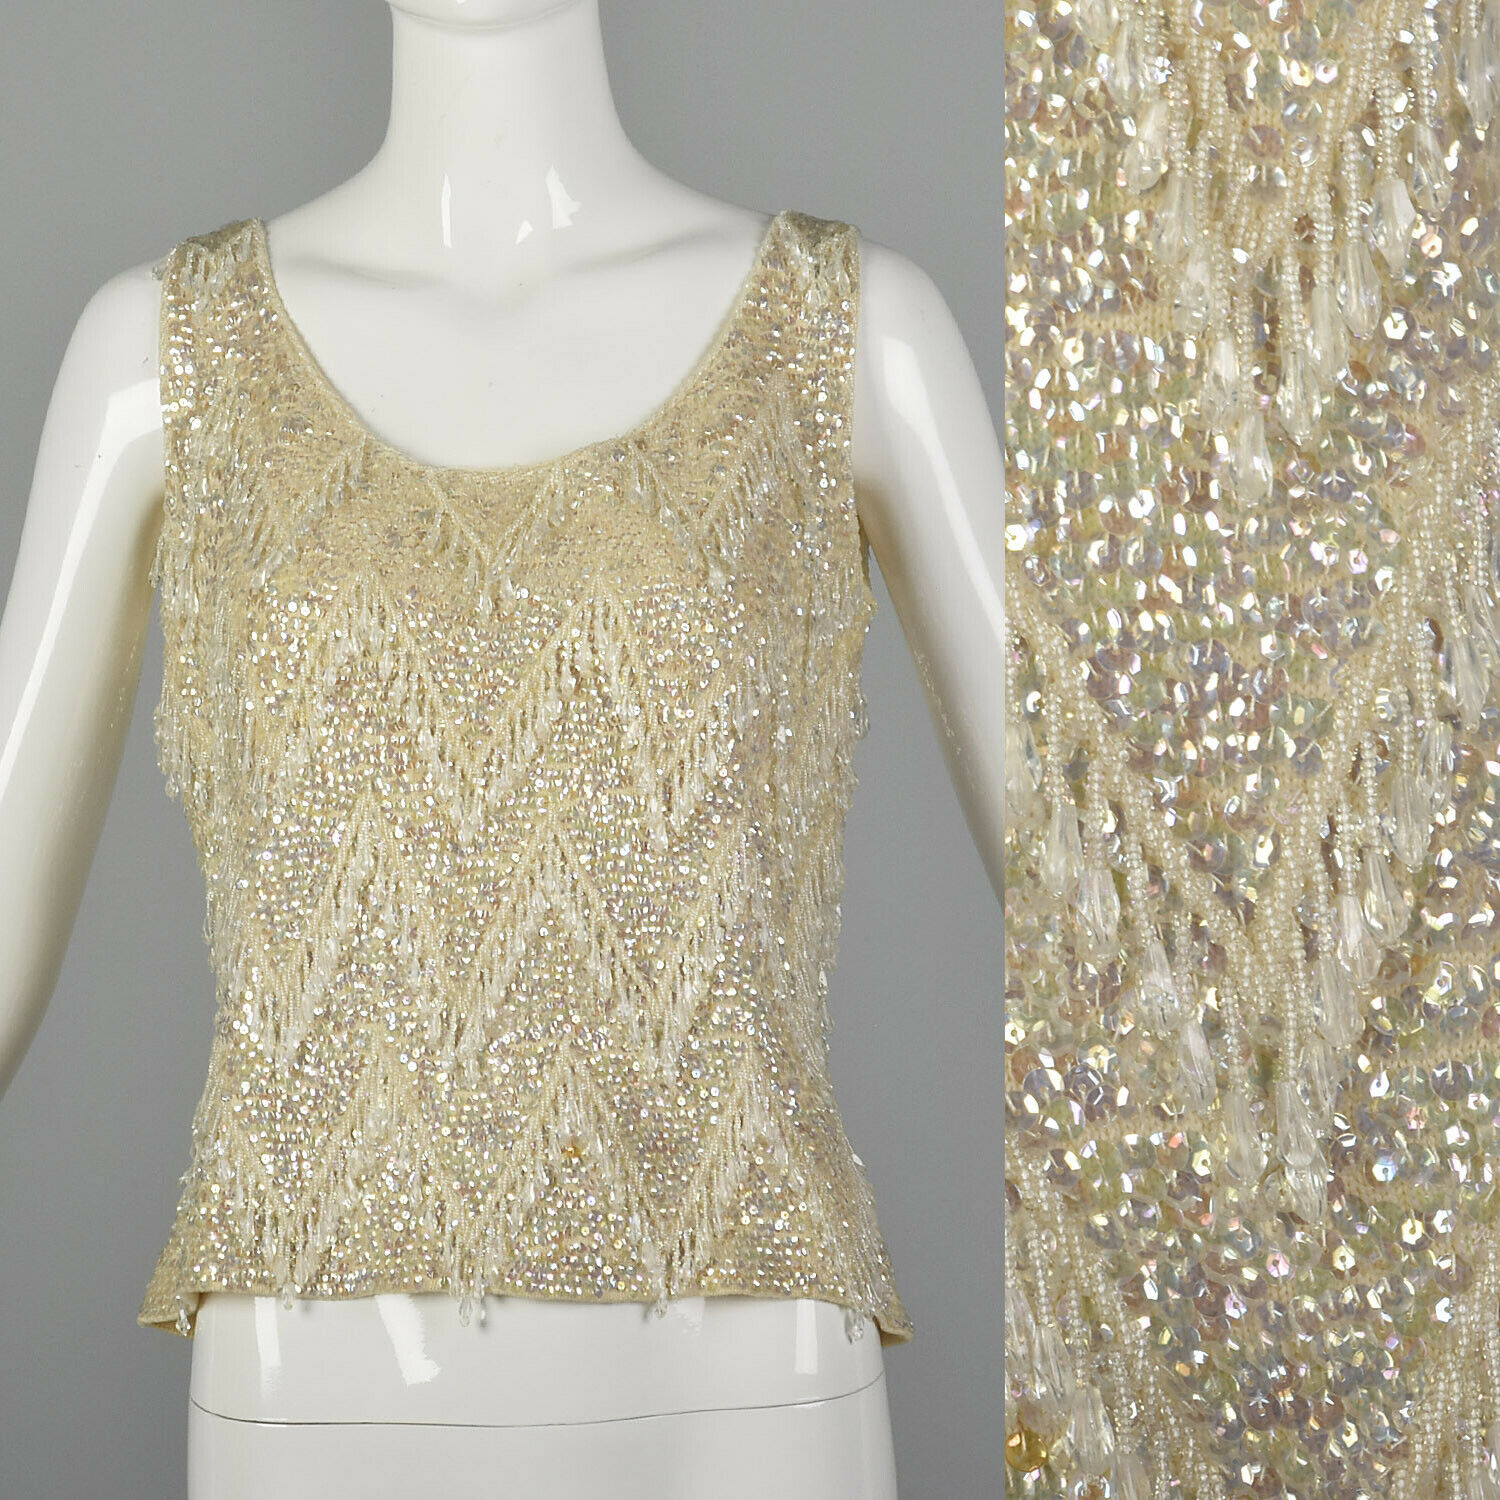 Large 1960s Sleeveless Beaded Sweater Blouse Ivory Knit Vintage Top Wedding 60s